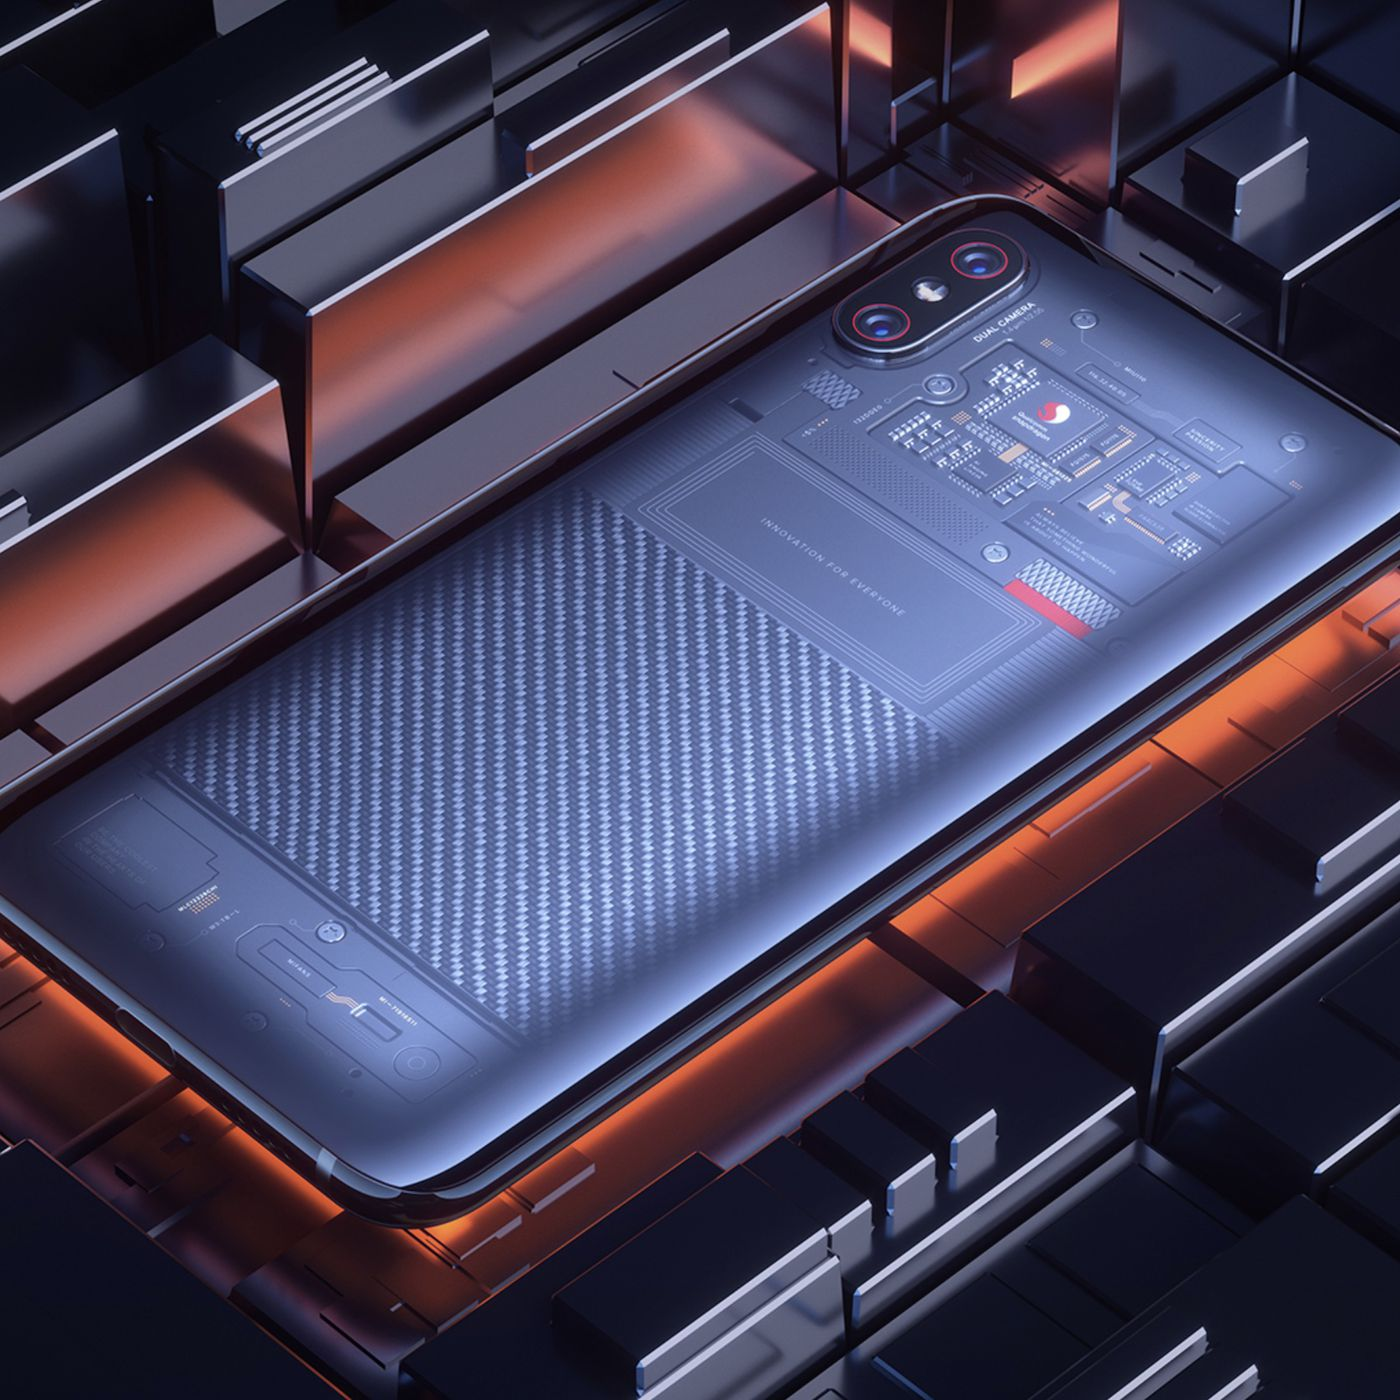 Xiaomi Mi 8 announced: specs, release date, and pricing - The Verge